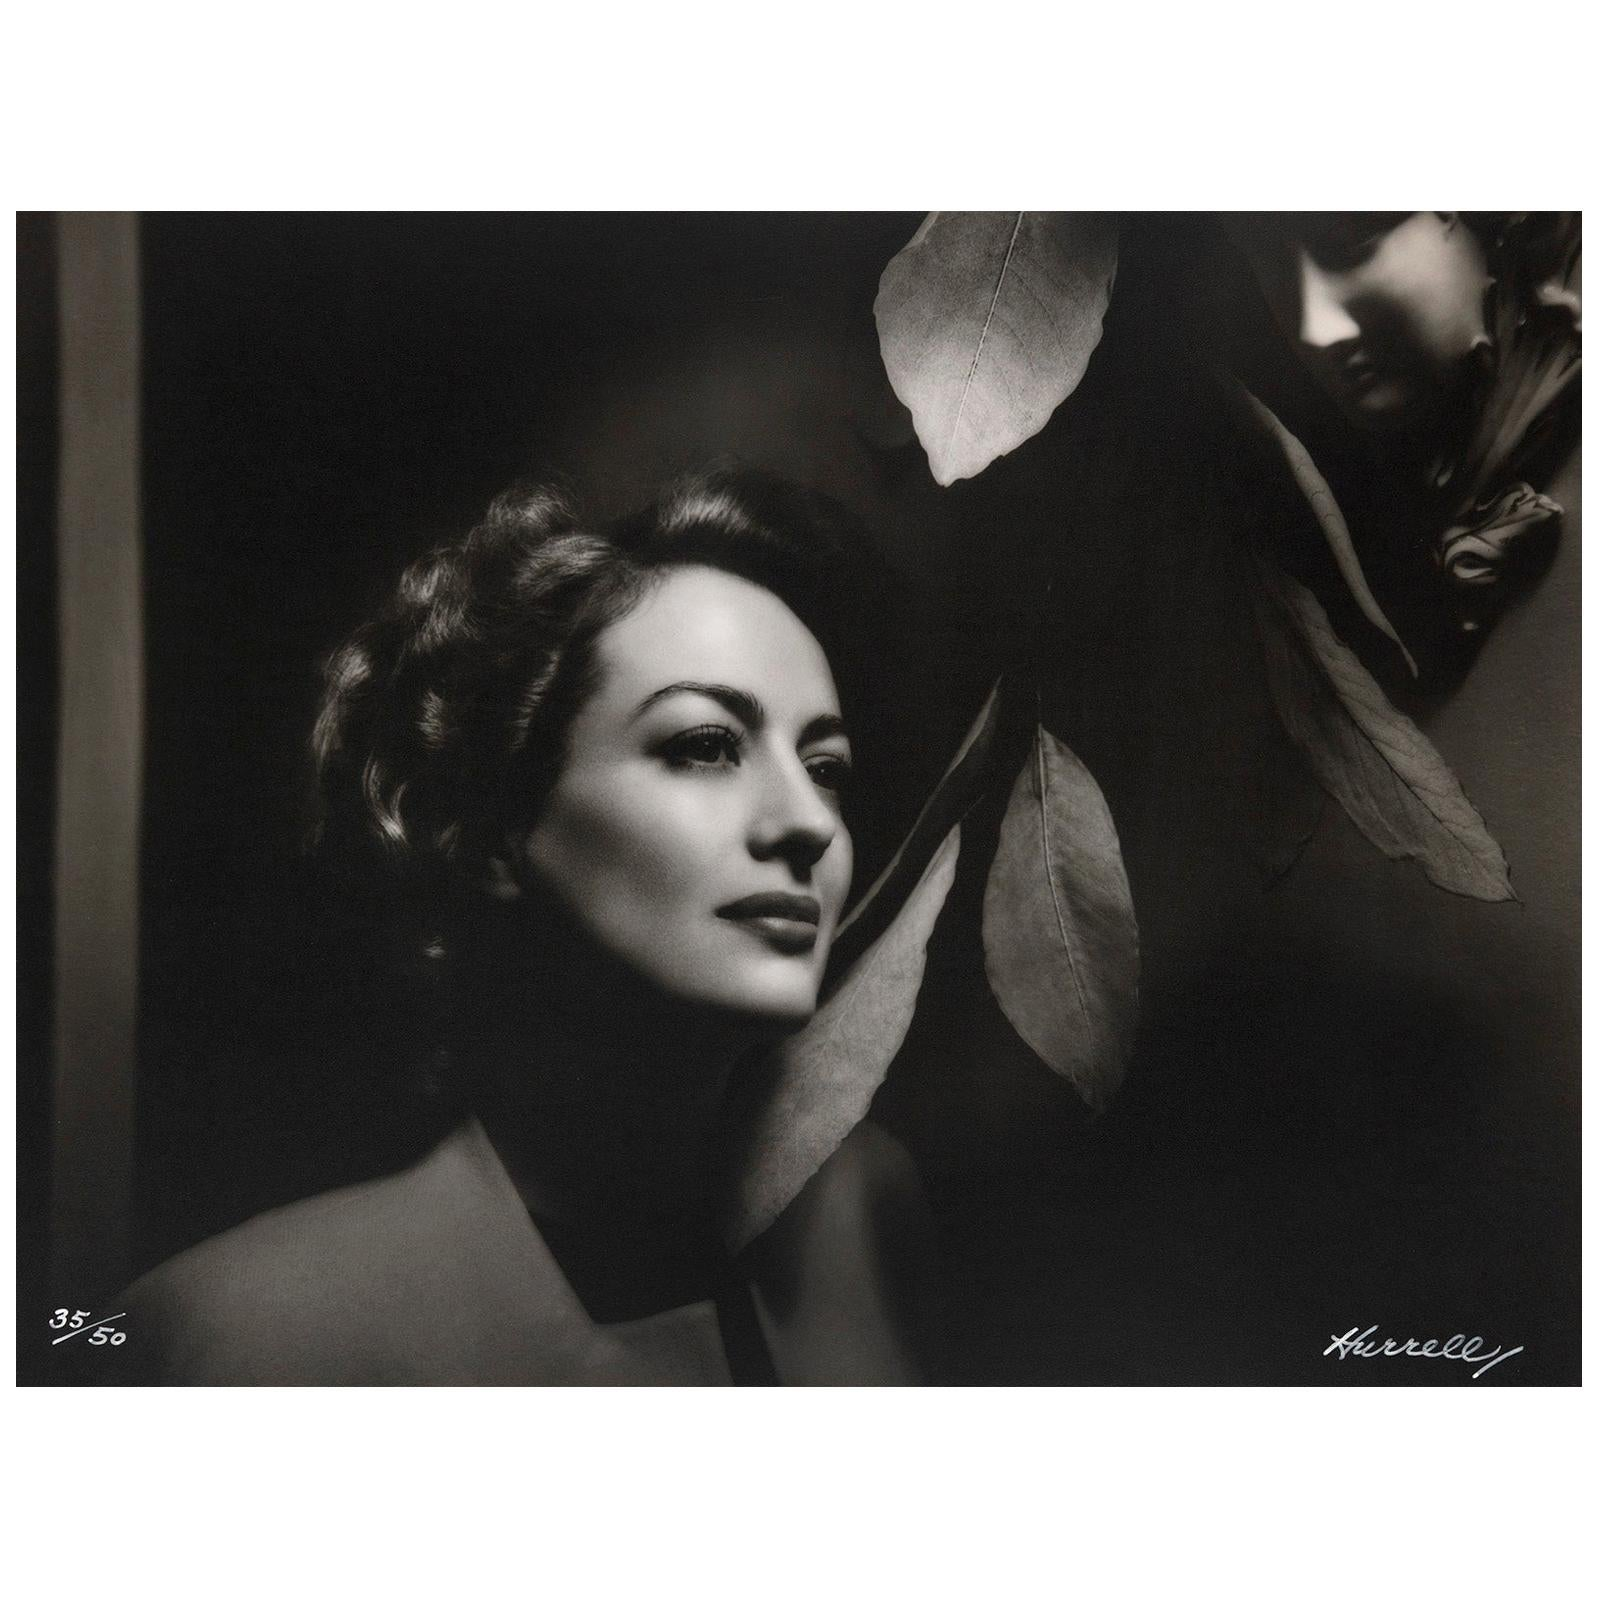 Portfolio of 8 Photographs by George Hurrell